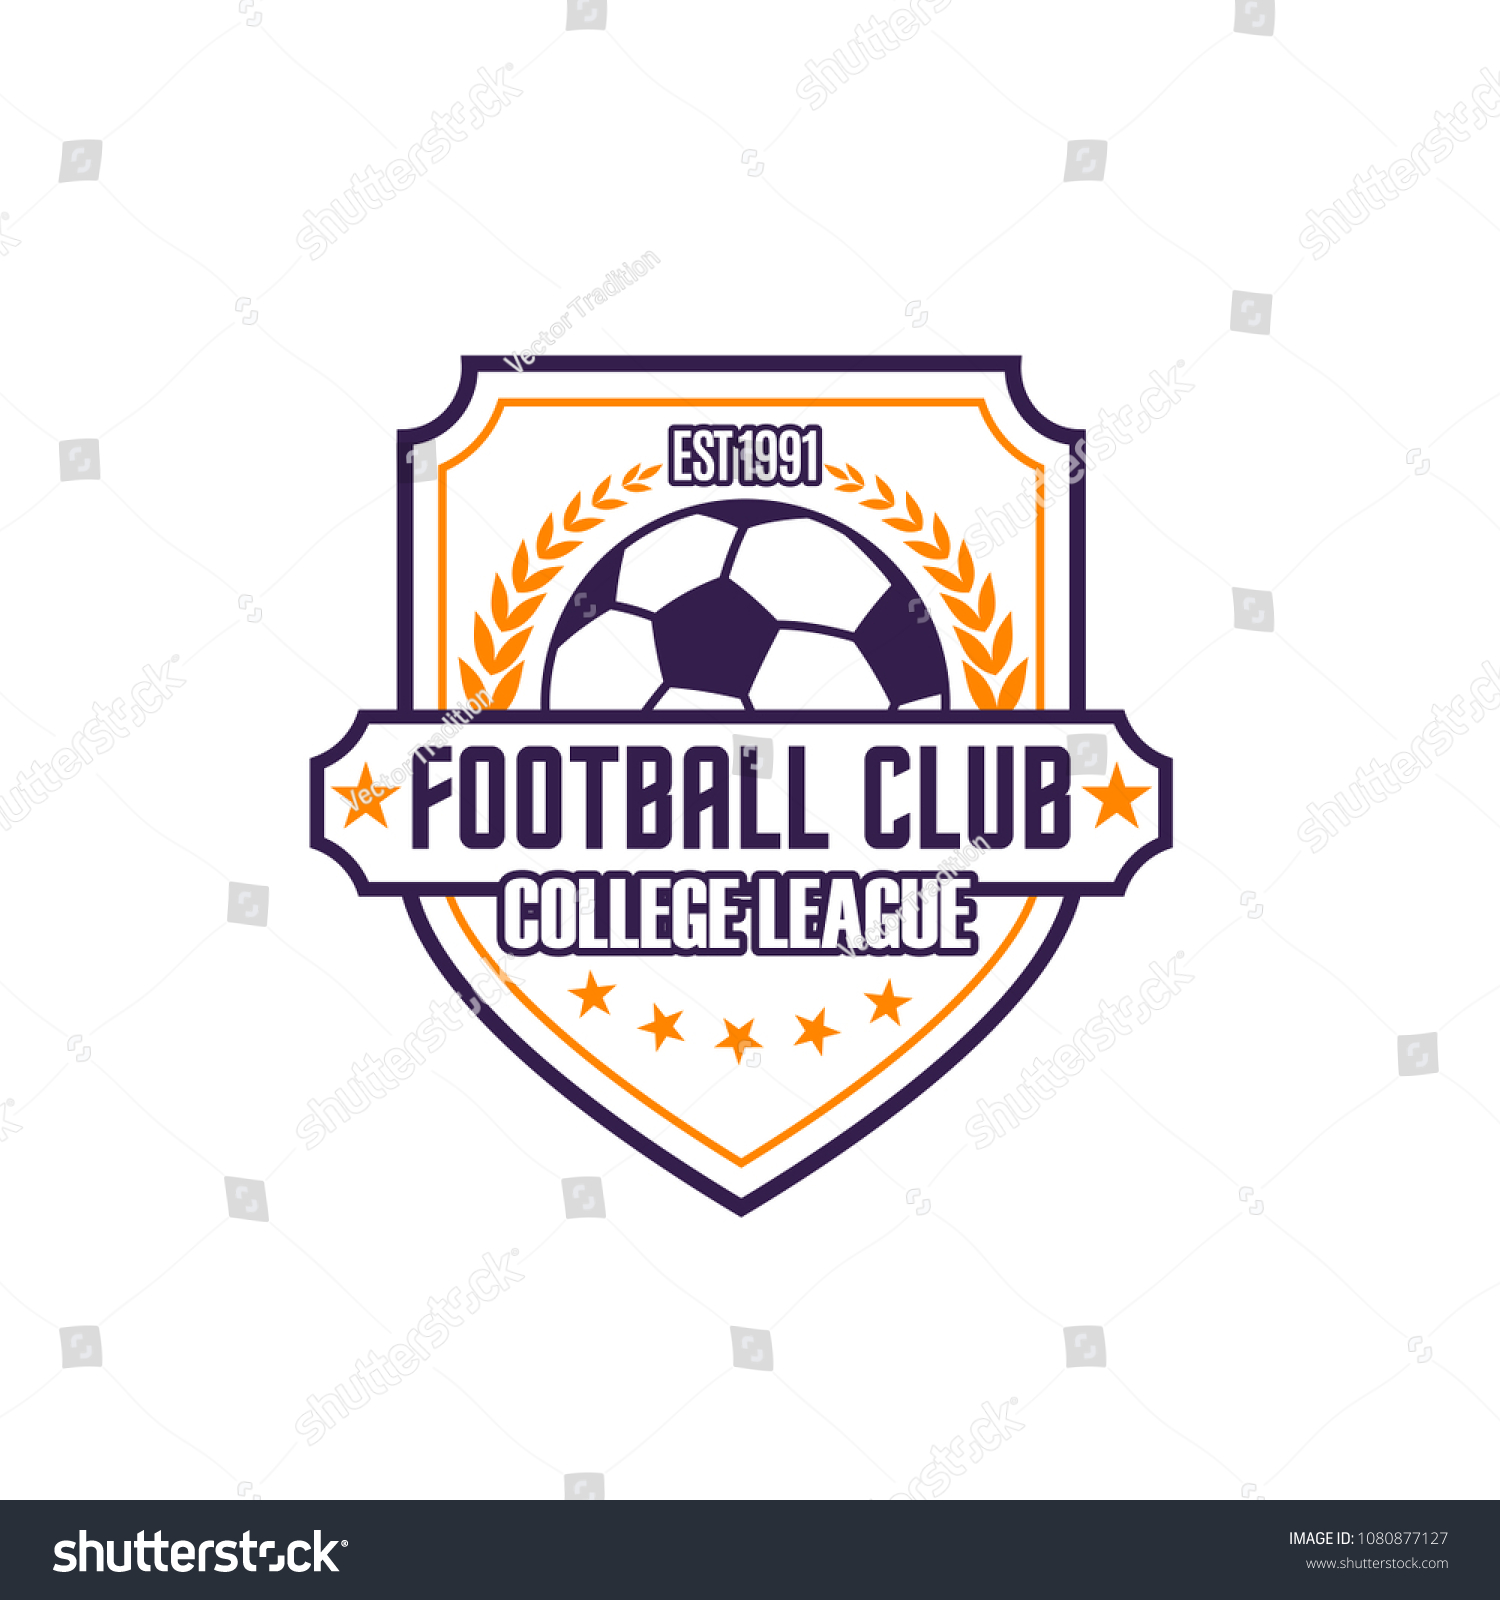 e64a8bf0a Football club college league vector icon isolated on white background.  Soccer college team vector emblem